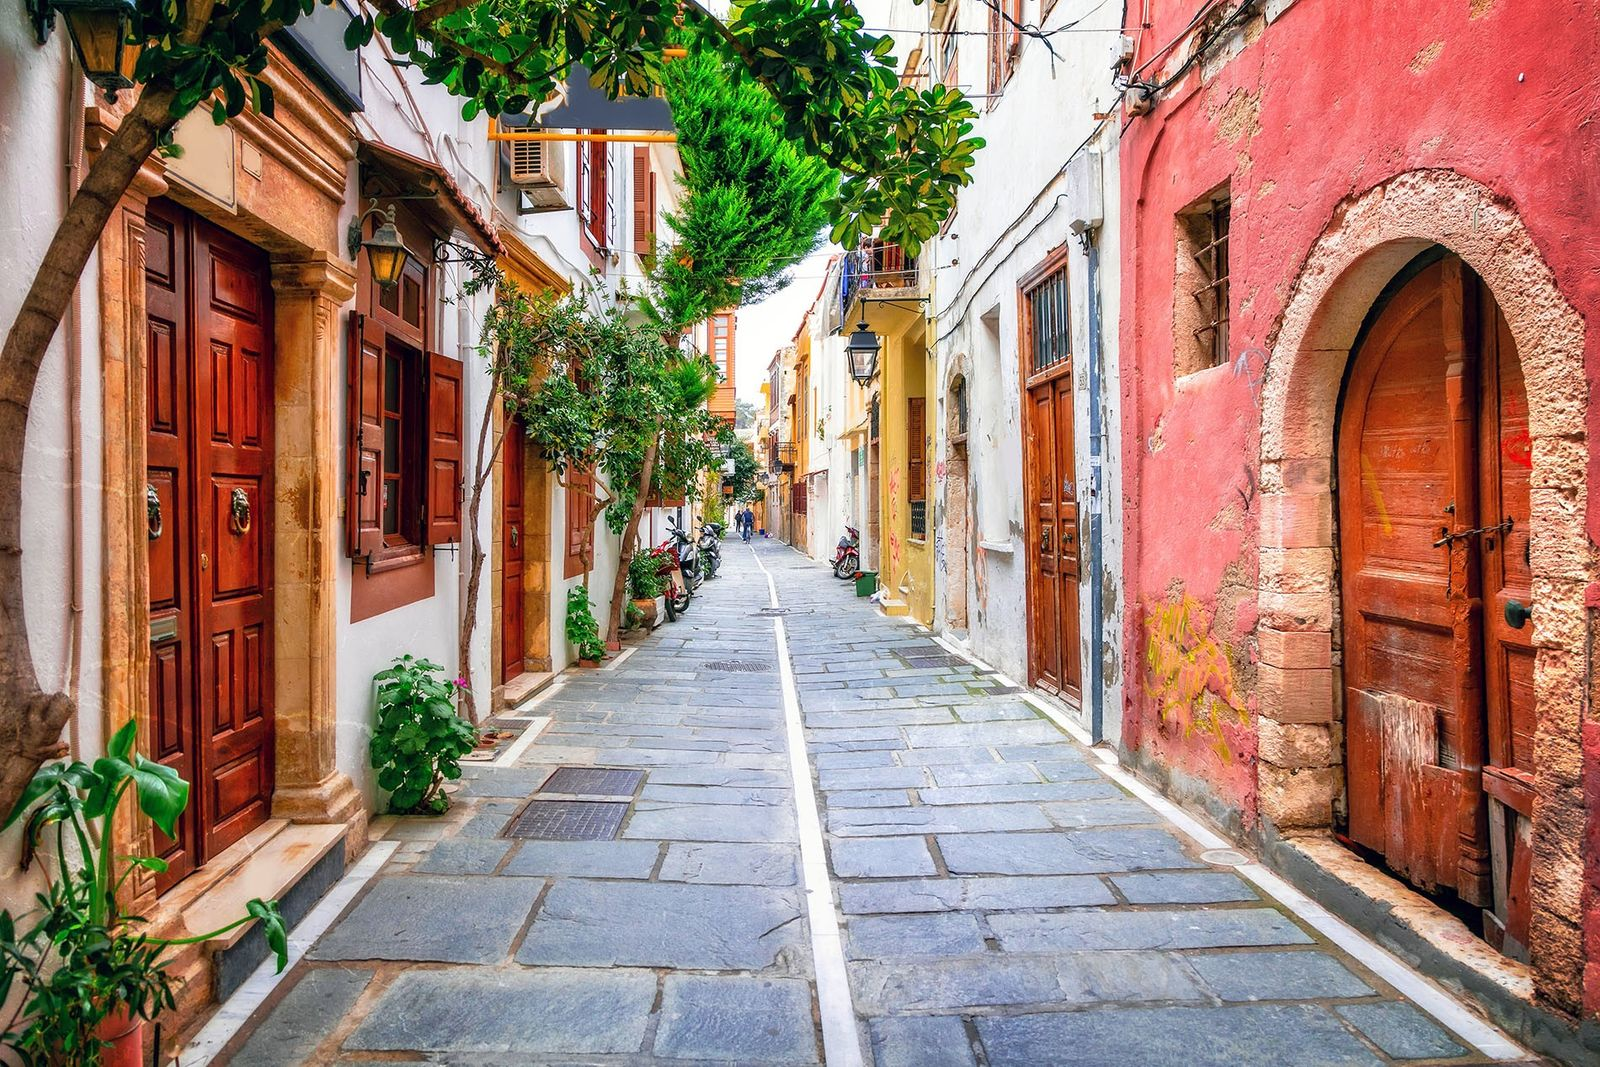 Rethymnon is known for its pastel-hued houses and Venetian harbour, where boats bob and fishermen bring ...